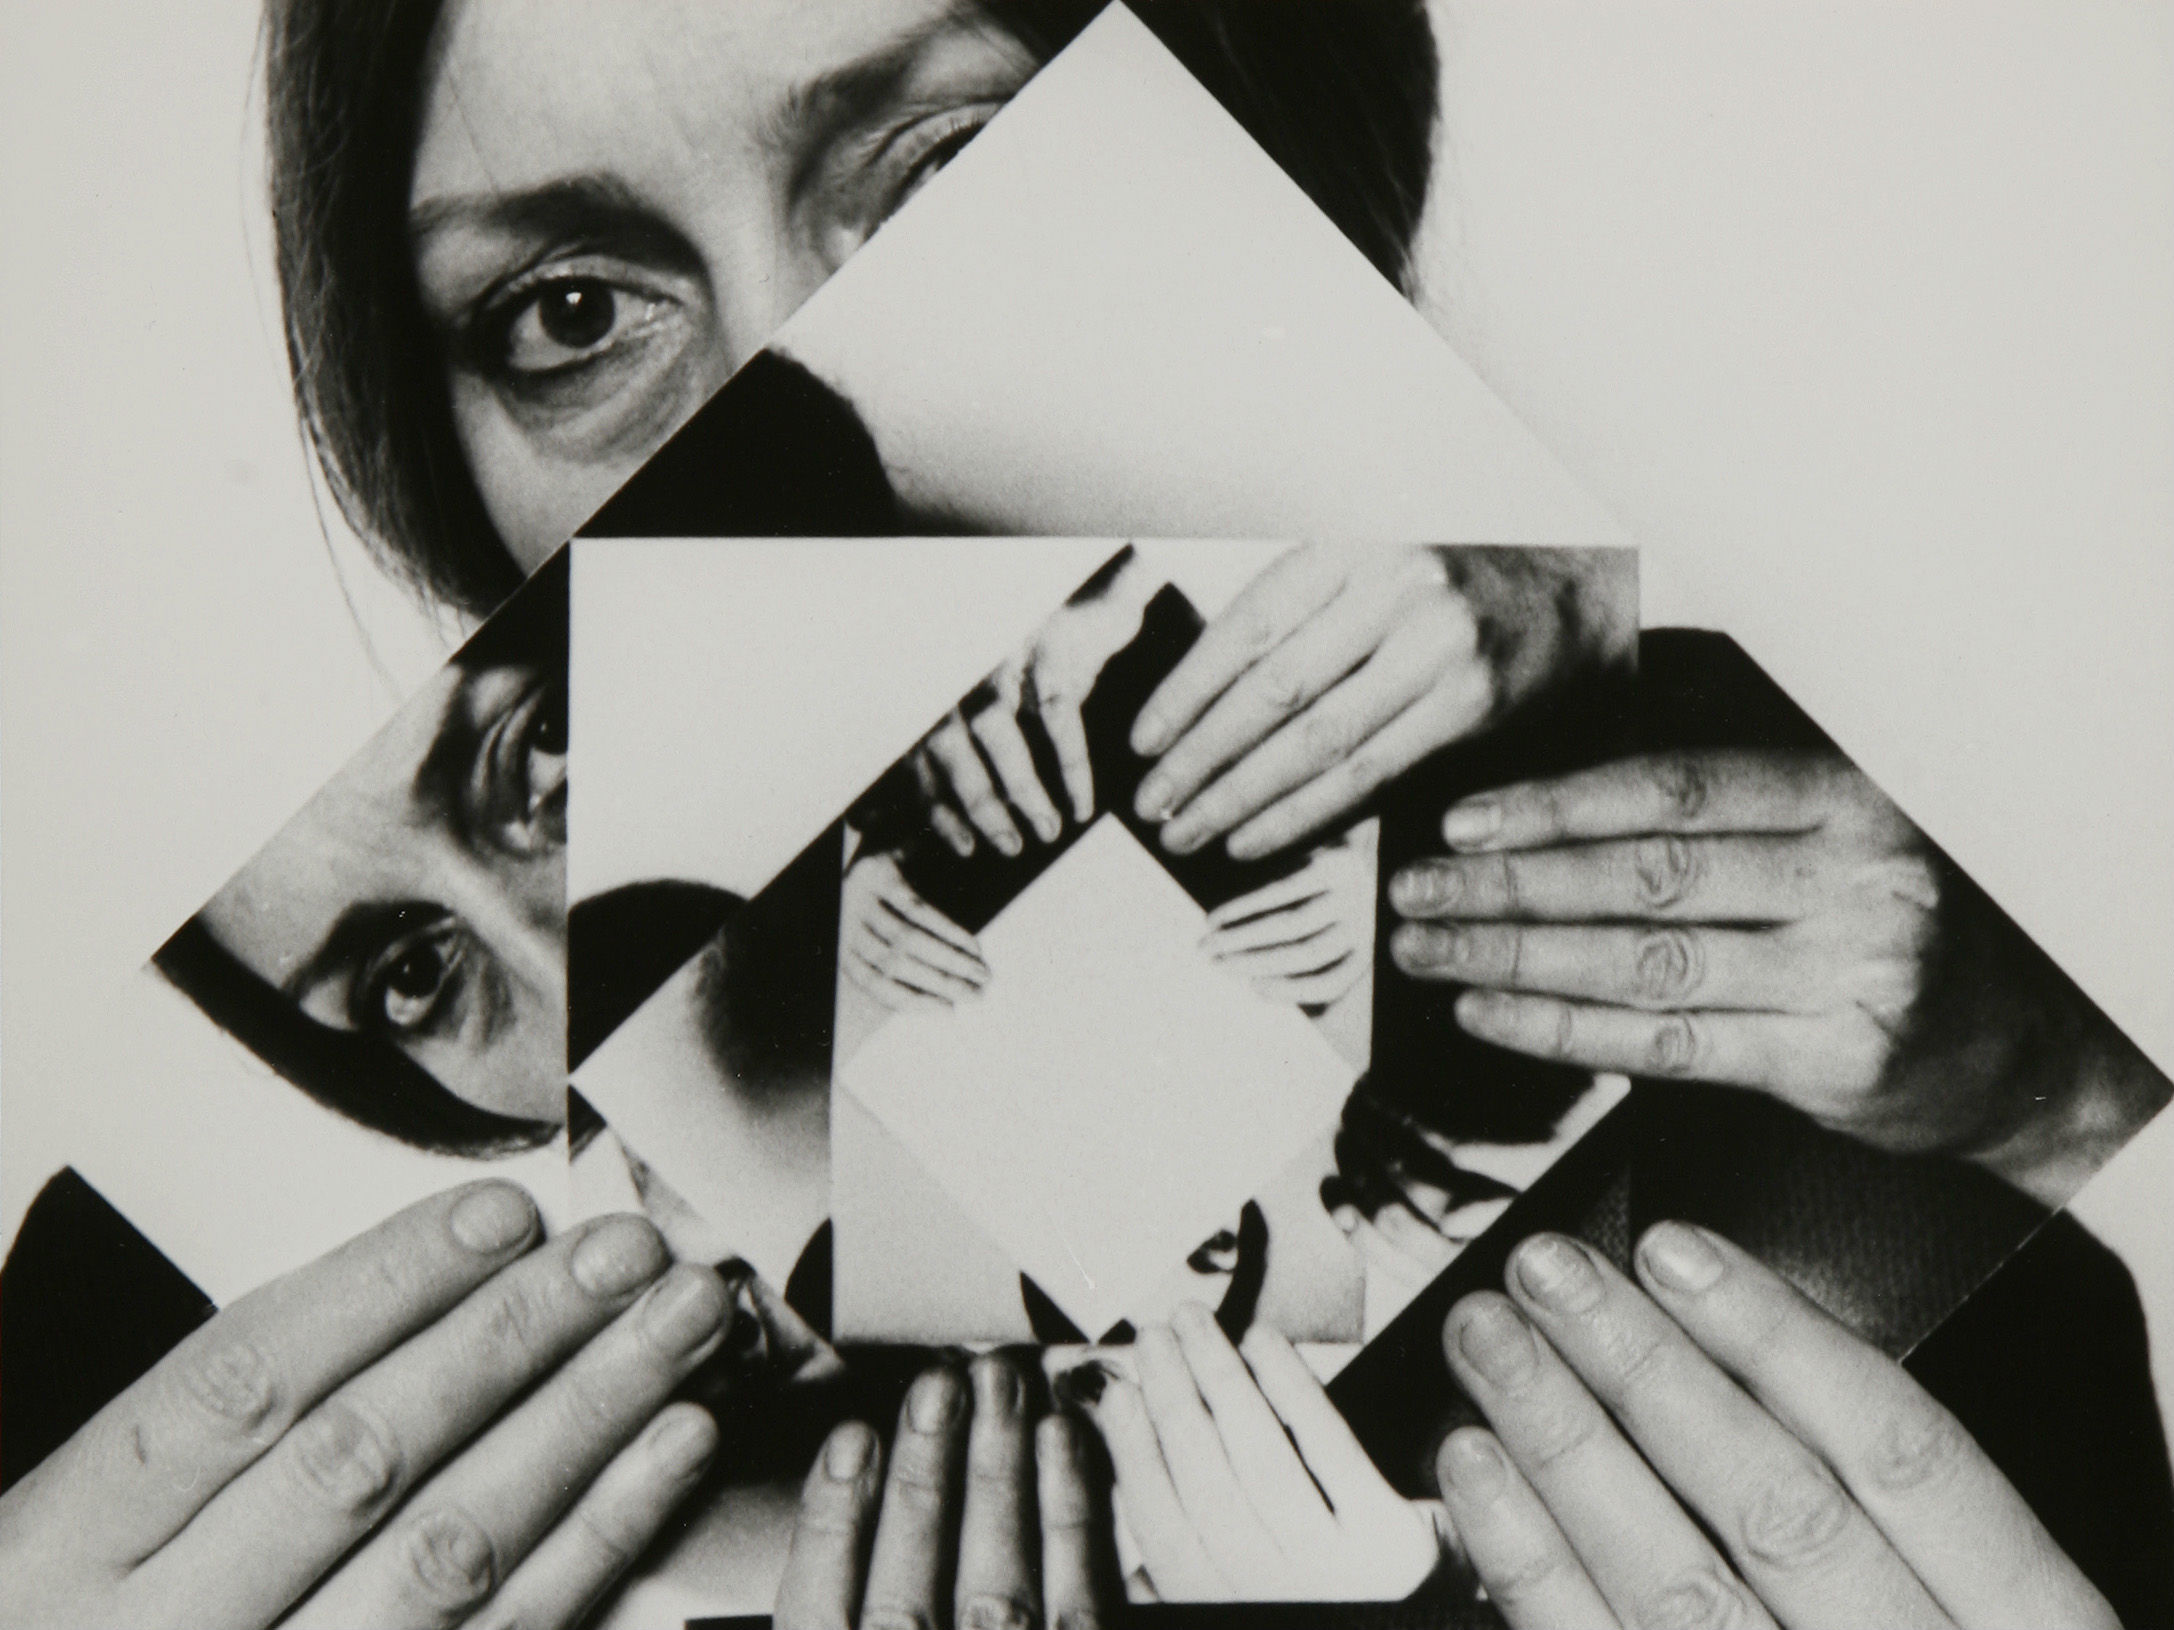 Win tickets to Whitechapel Gallery's Adventures of the Black Square exhibition